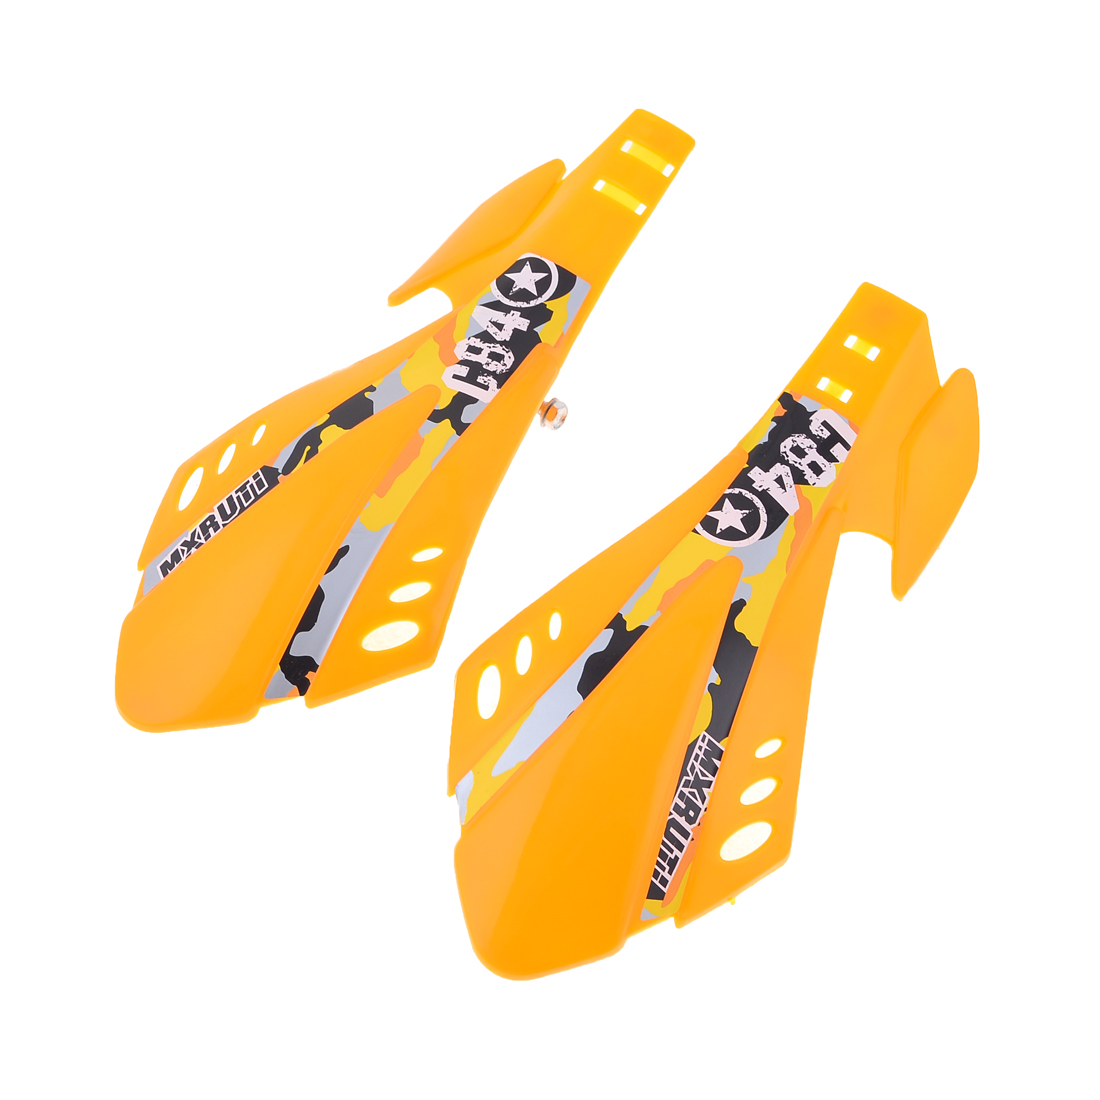 2 Pcs Common Scooter Parts Plastic Handlebar Hand Guards Guardian Yellow